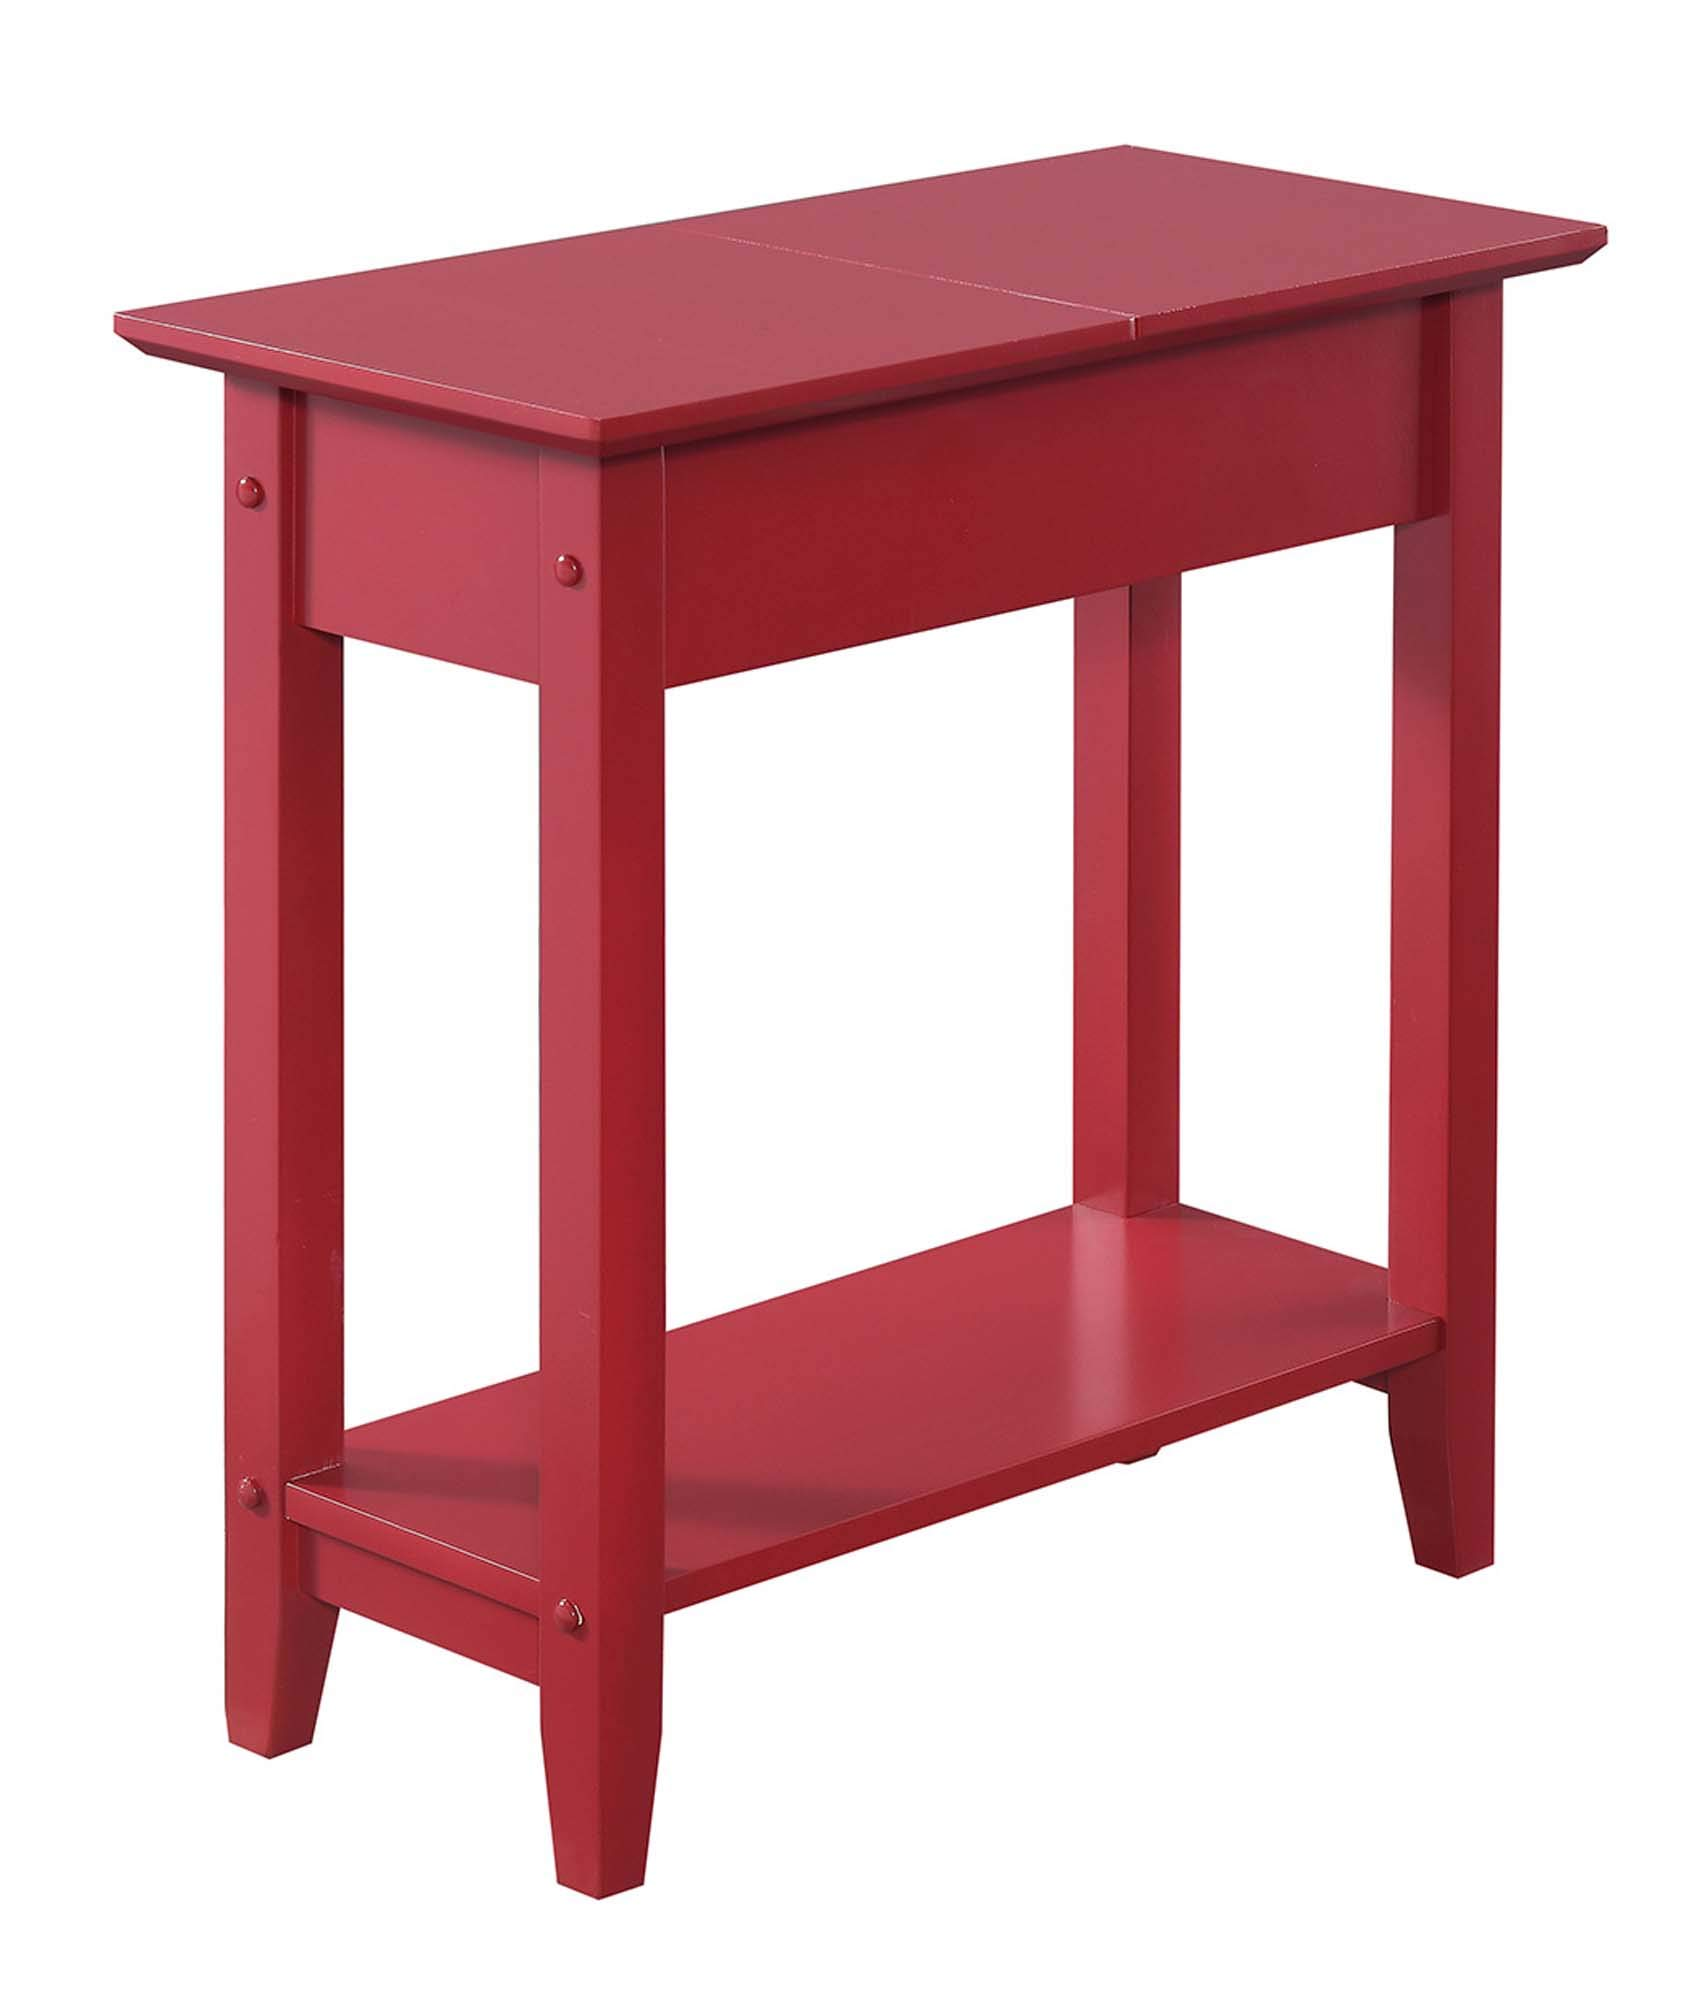 Convenience Concepts American Heritage Flip Top End Table, Cranberry Red